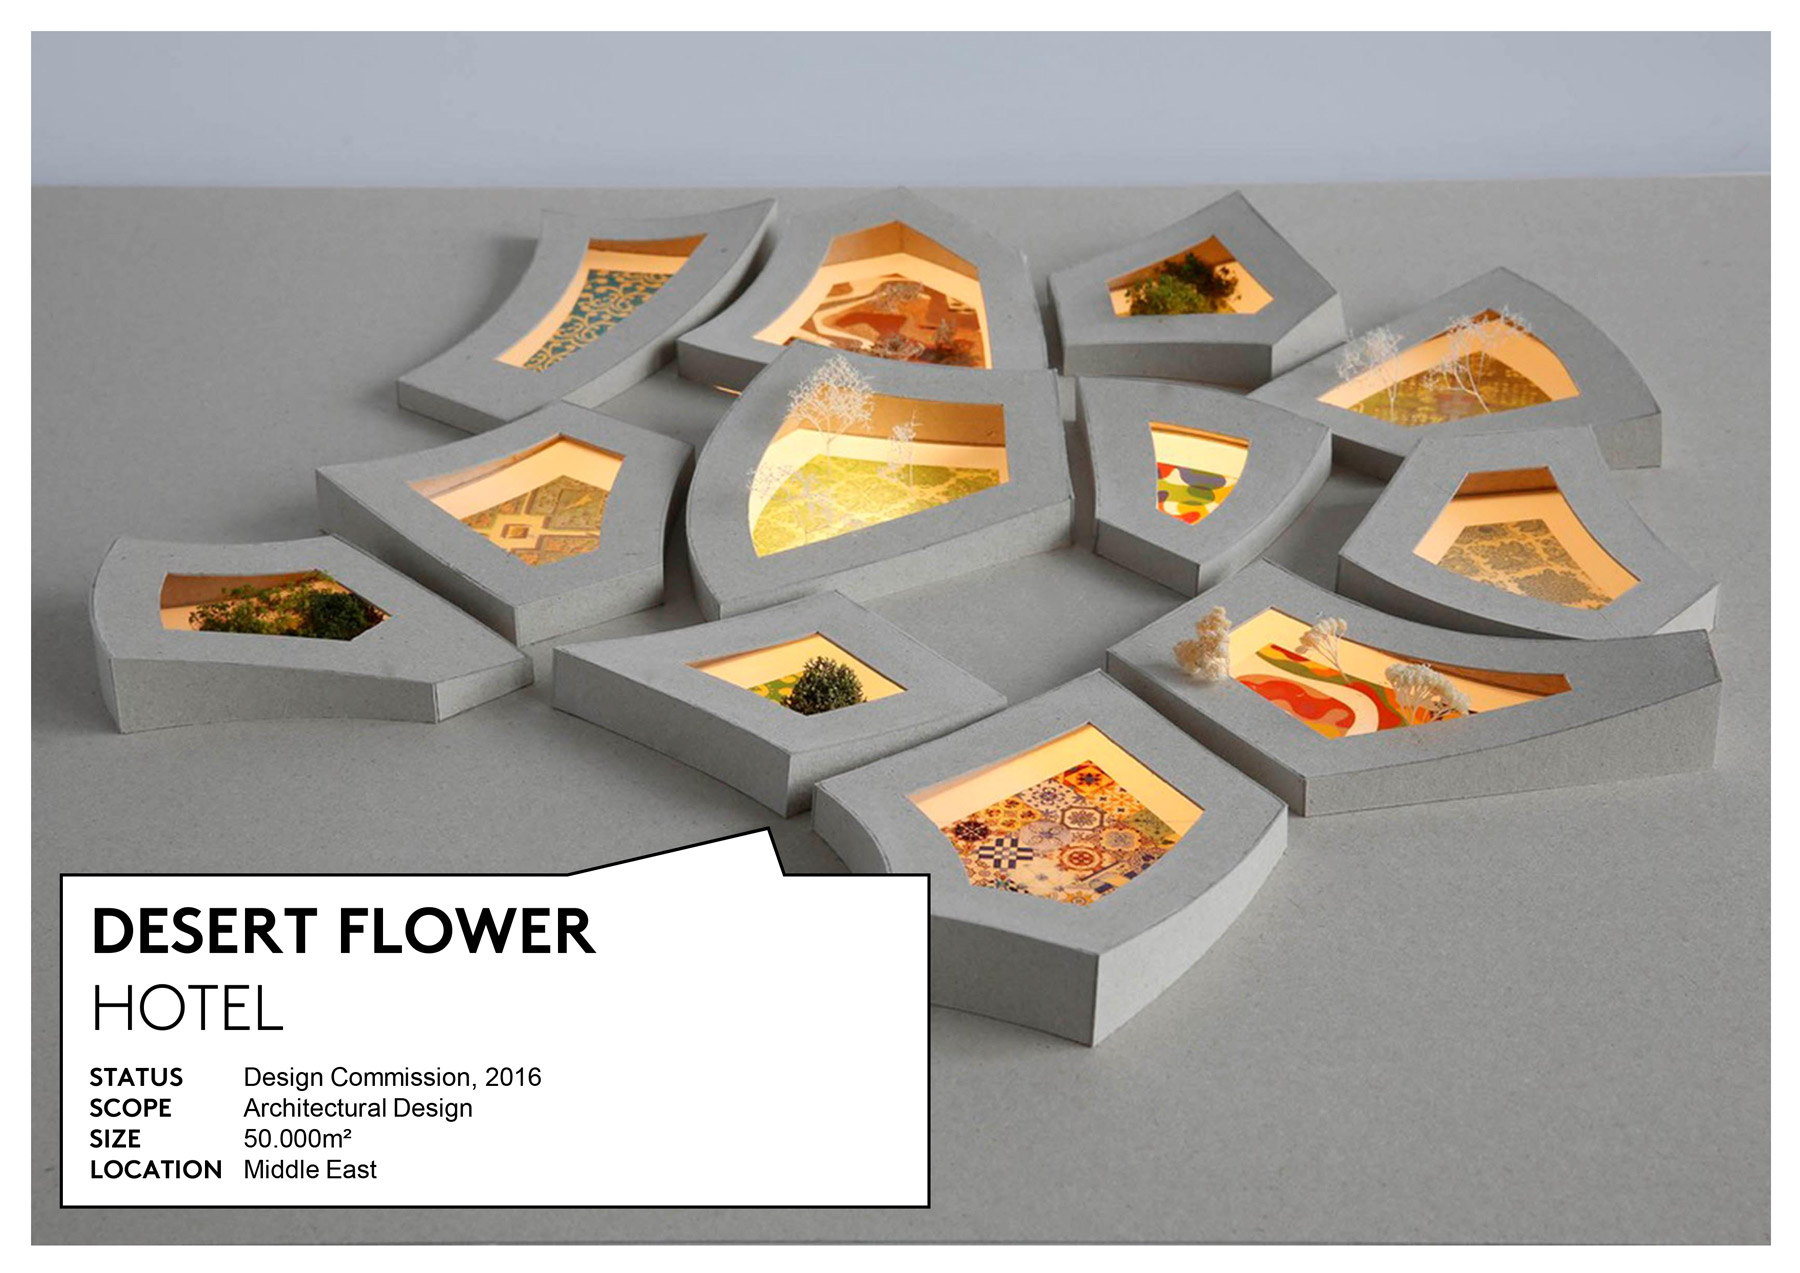 311_Desert_Flower_Slide_02